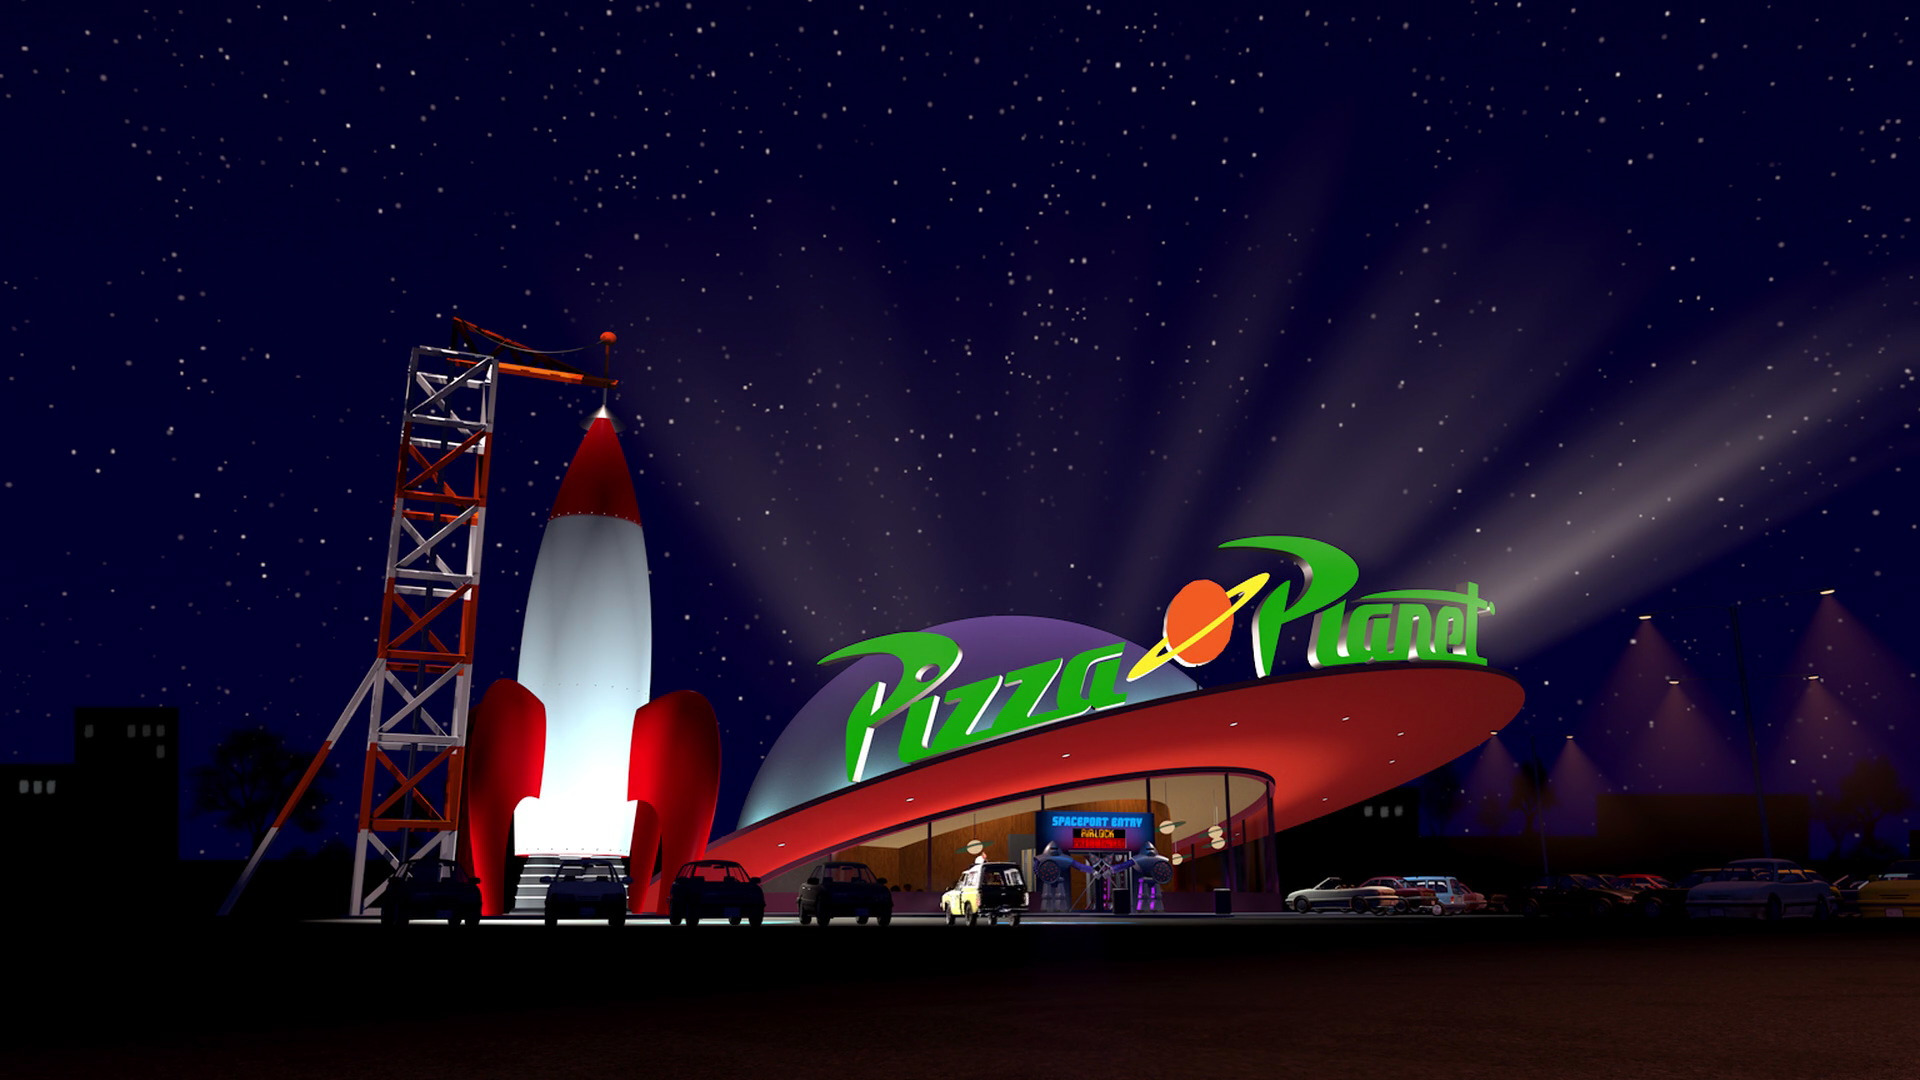 Toy Story - Pizza Planet